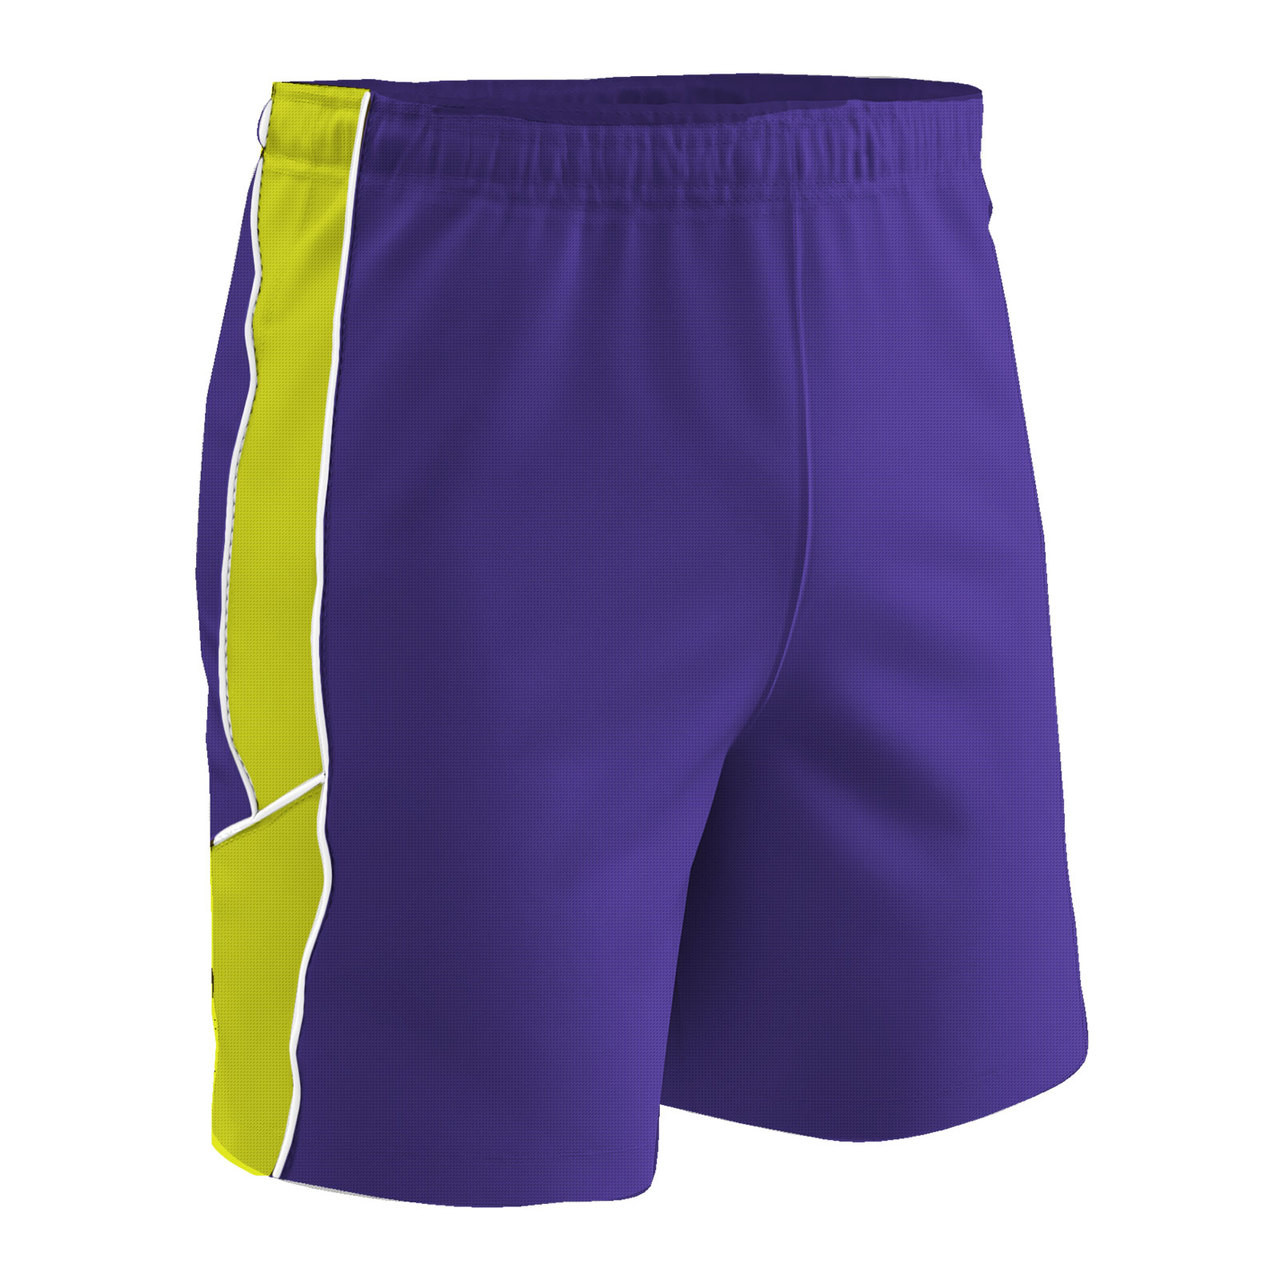 60abb9192 Champro Sports Header soccer shorts in purple optic yellow